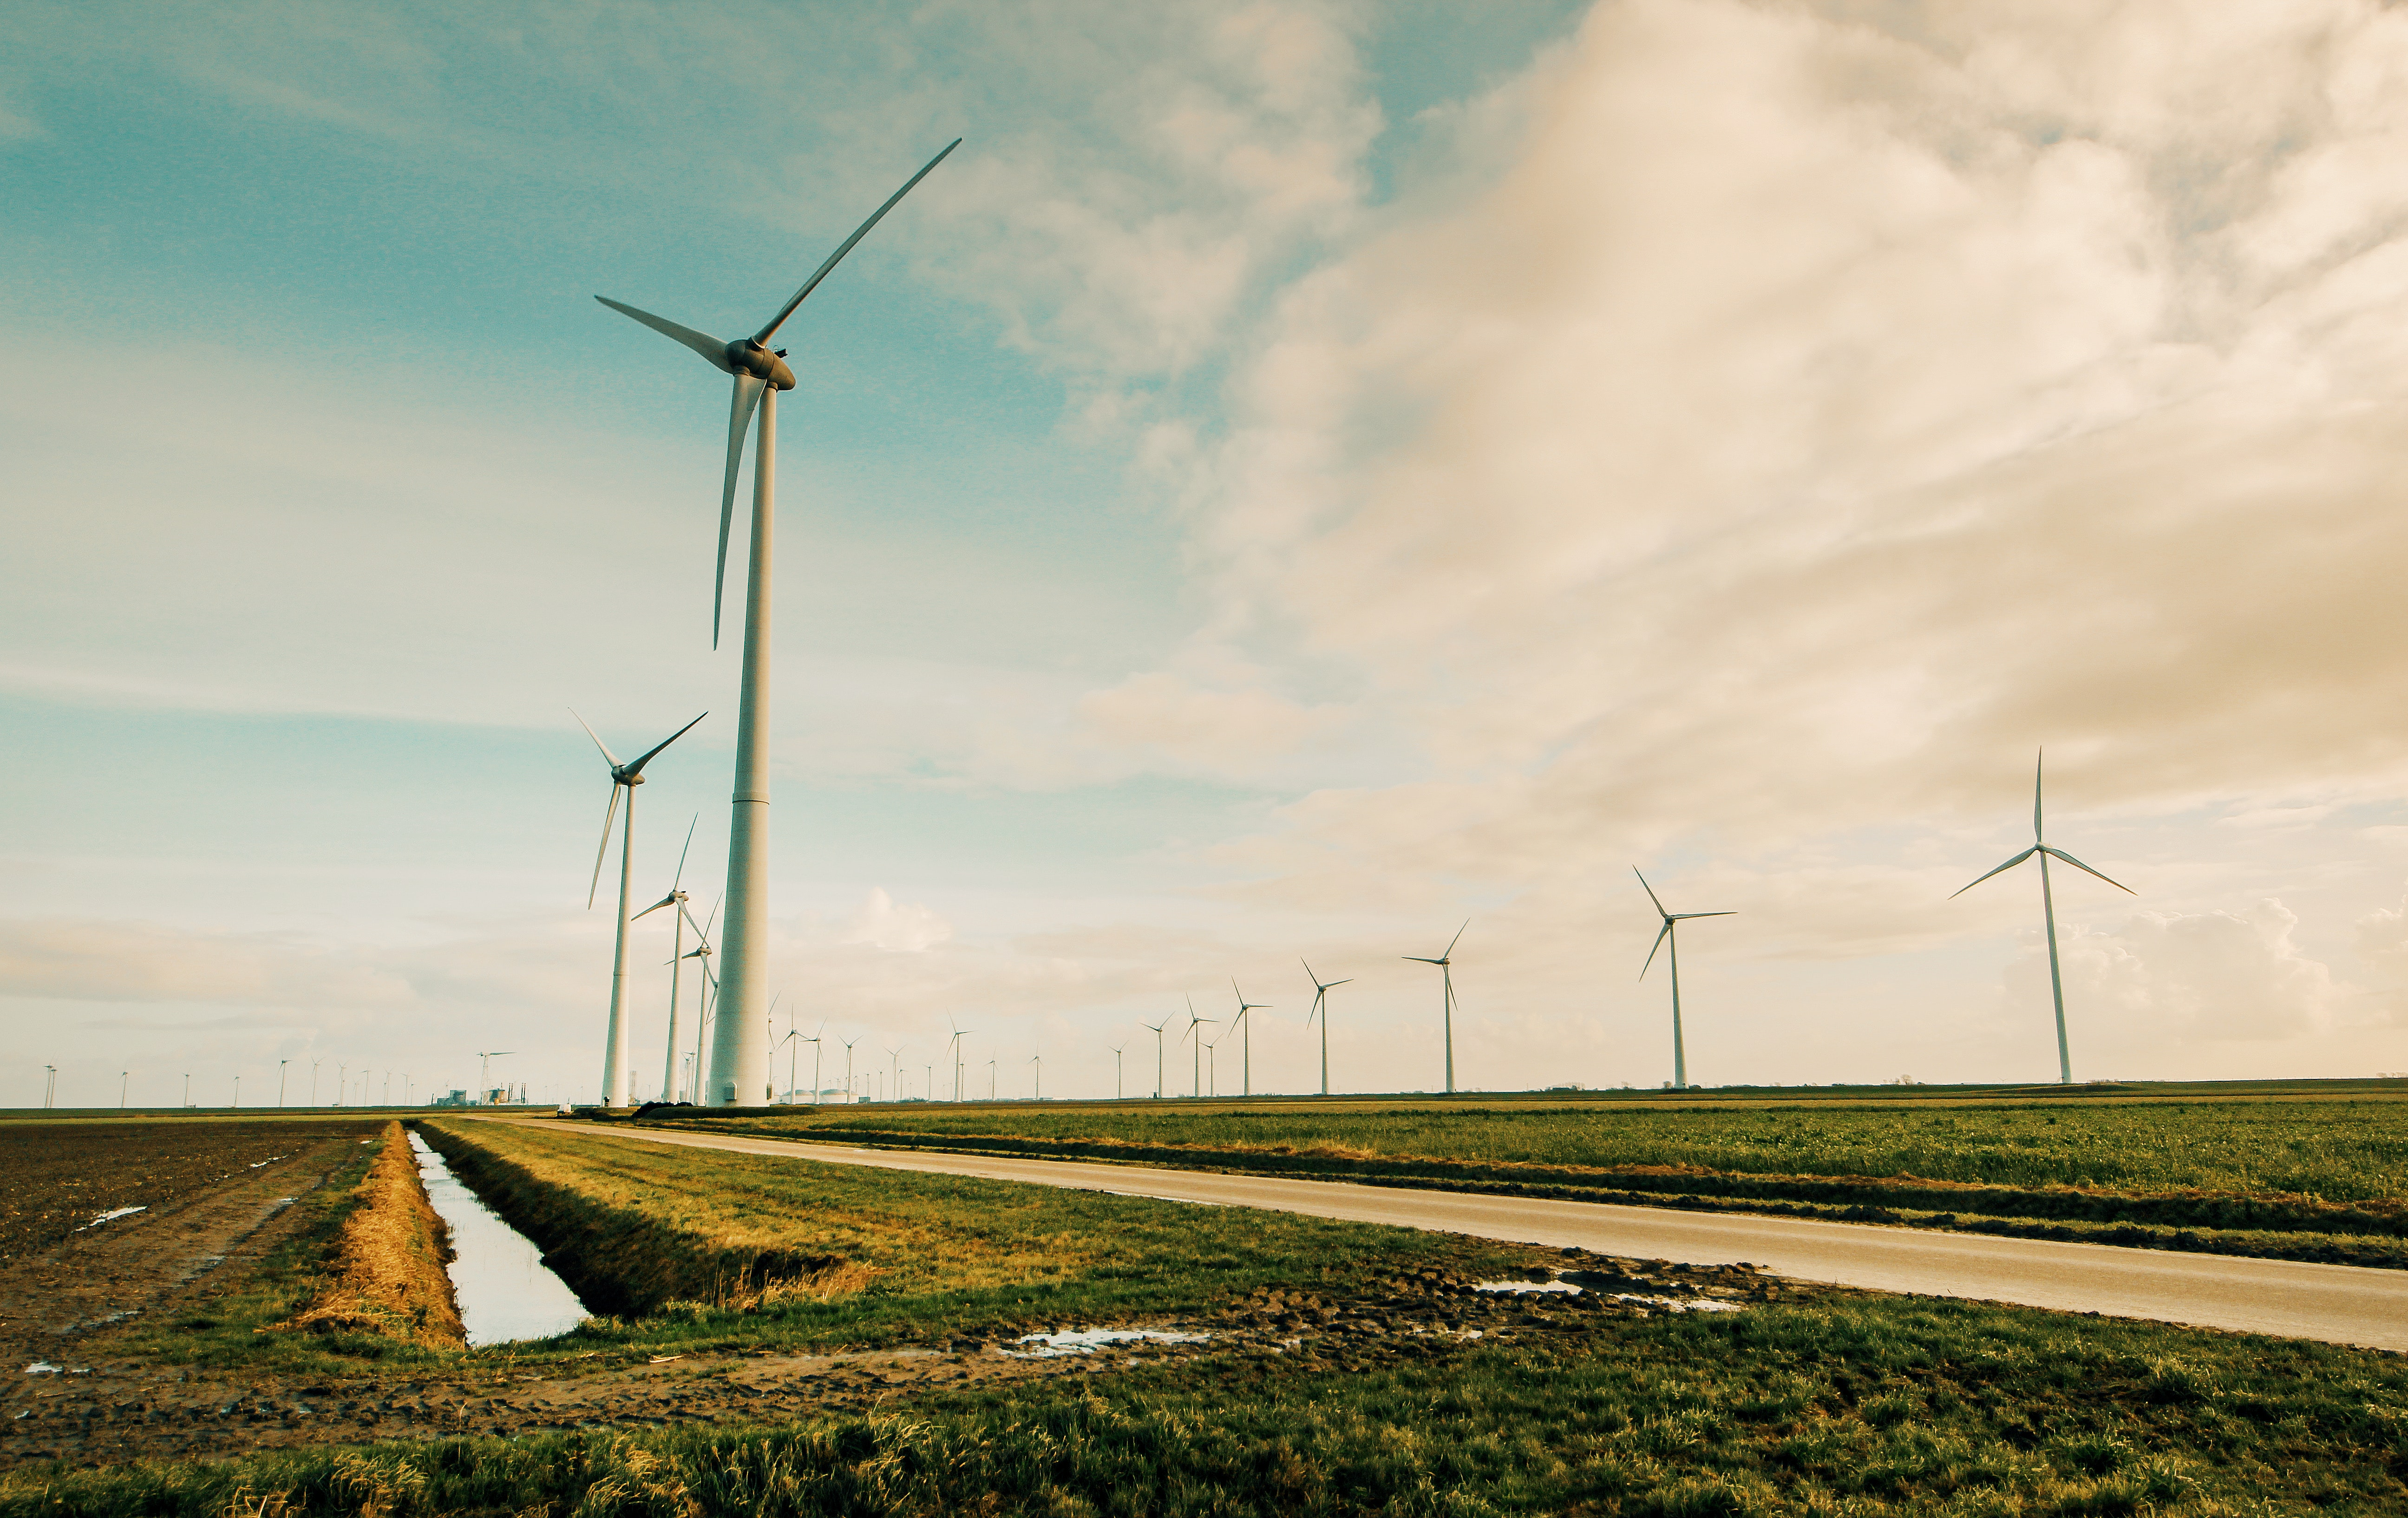 Windmill Energy on Green Grass Field, Road, Rotation, Renewable energy, Propellers, HQ Photo